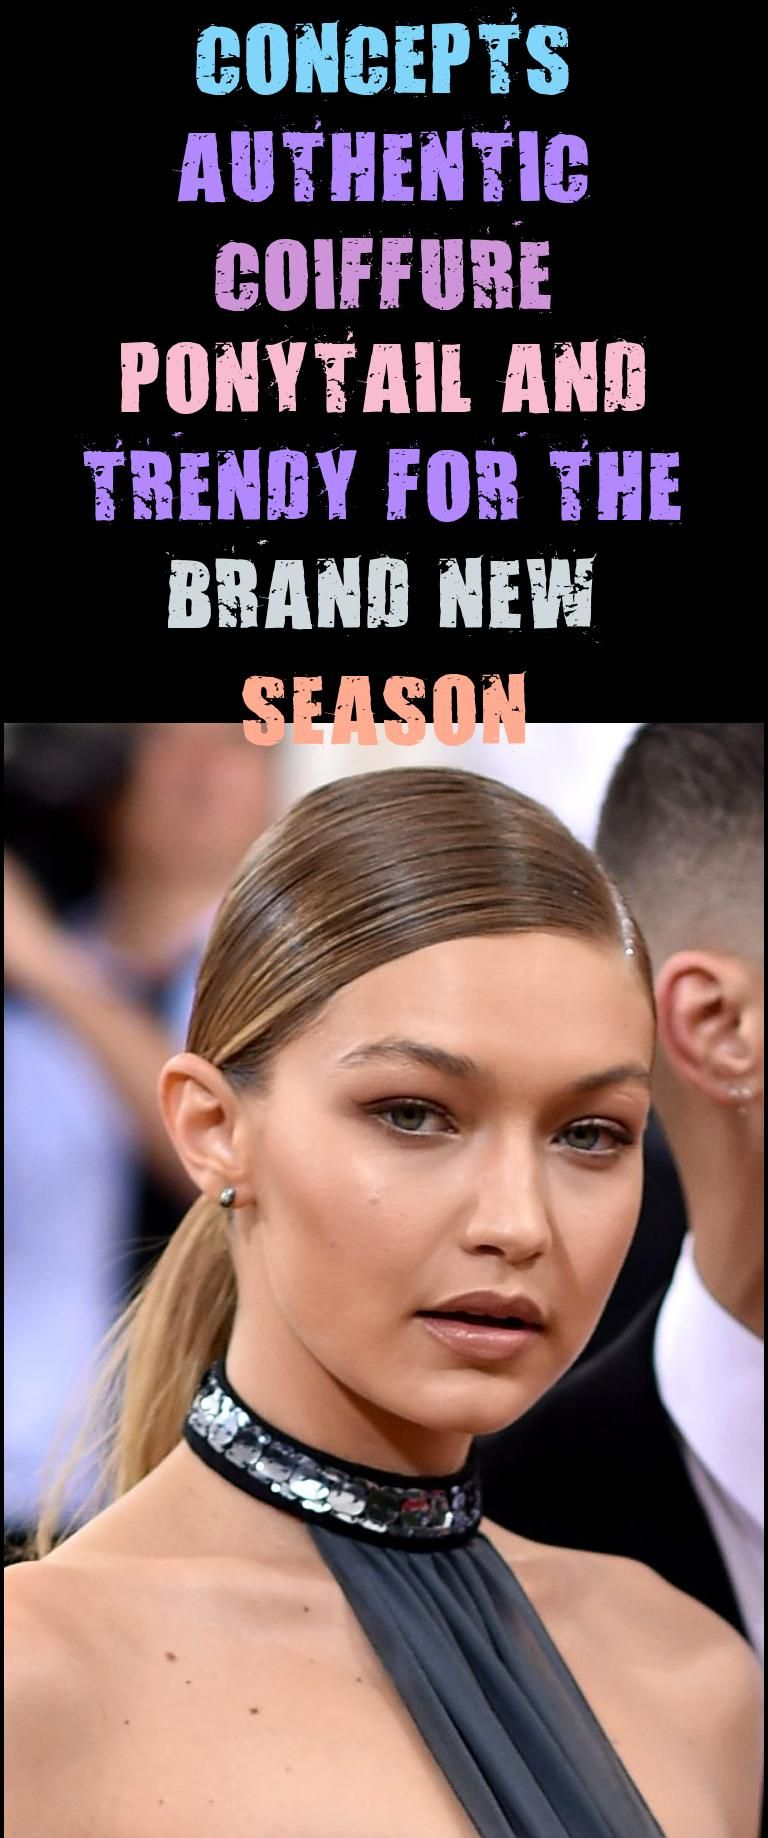 Concepts Authentic Coiffure Ponytail And Trendy For The Brand New Season Coiffure Ponytail Trendy